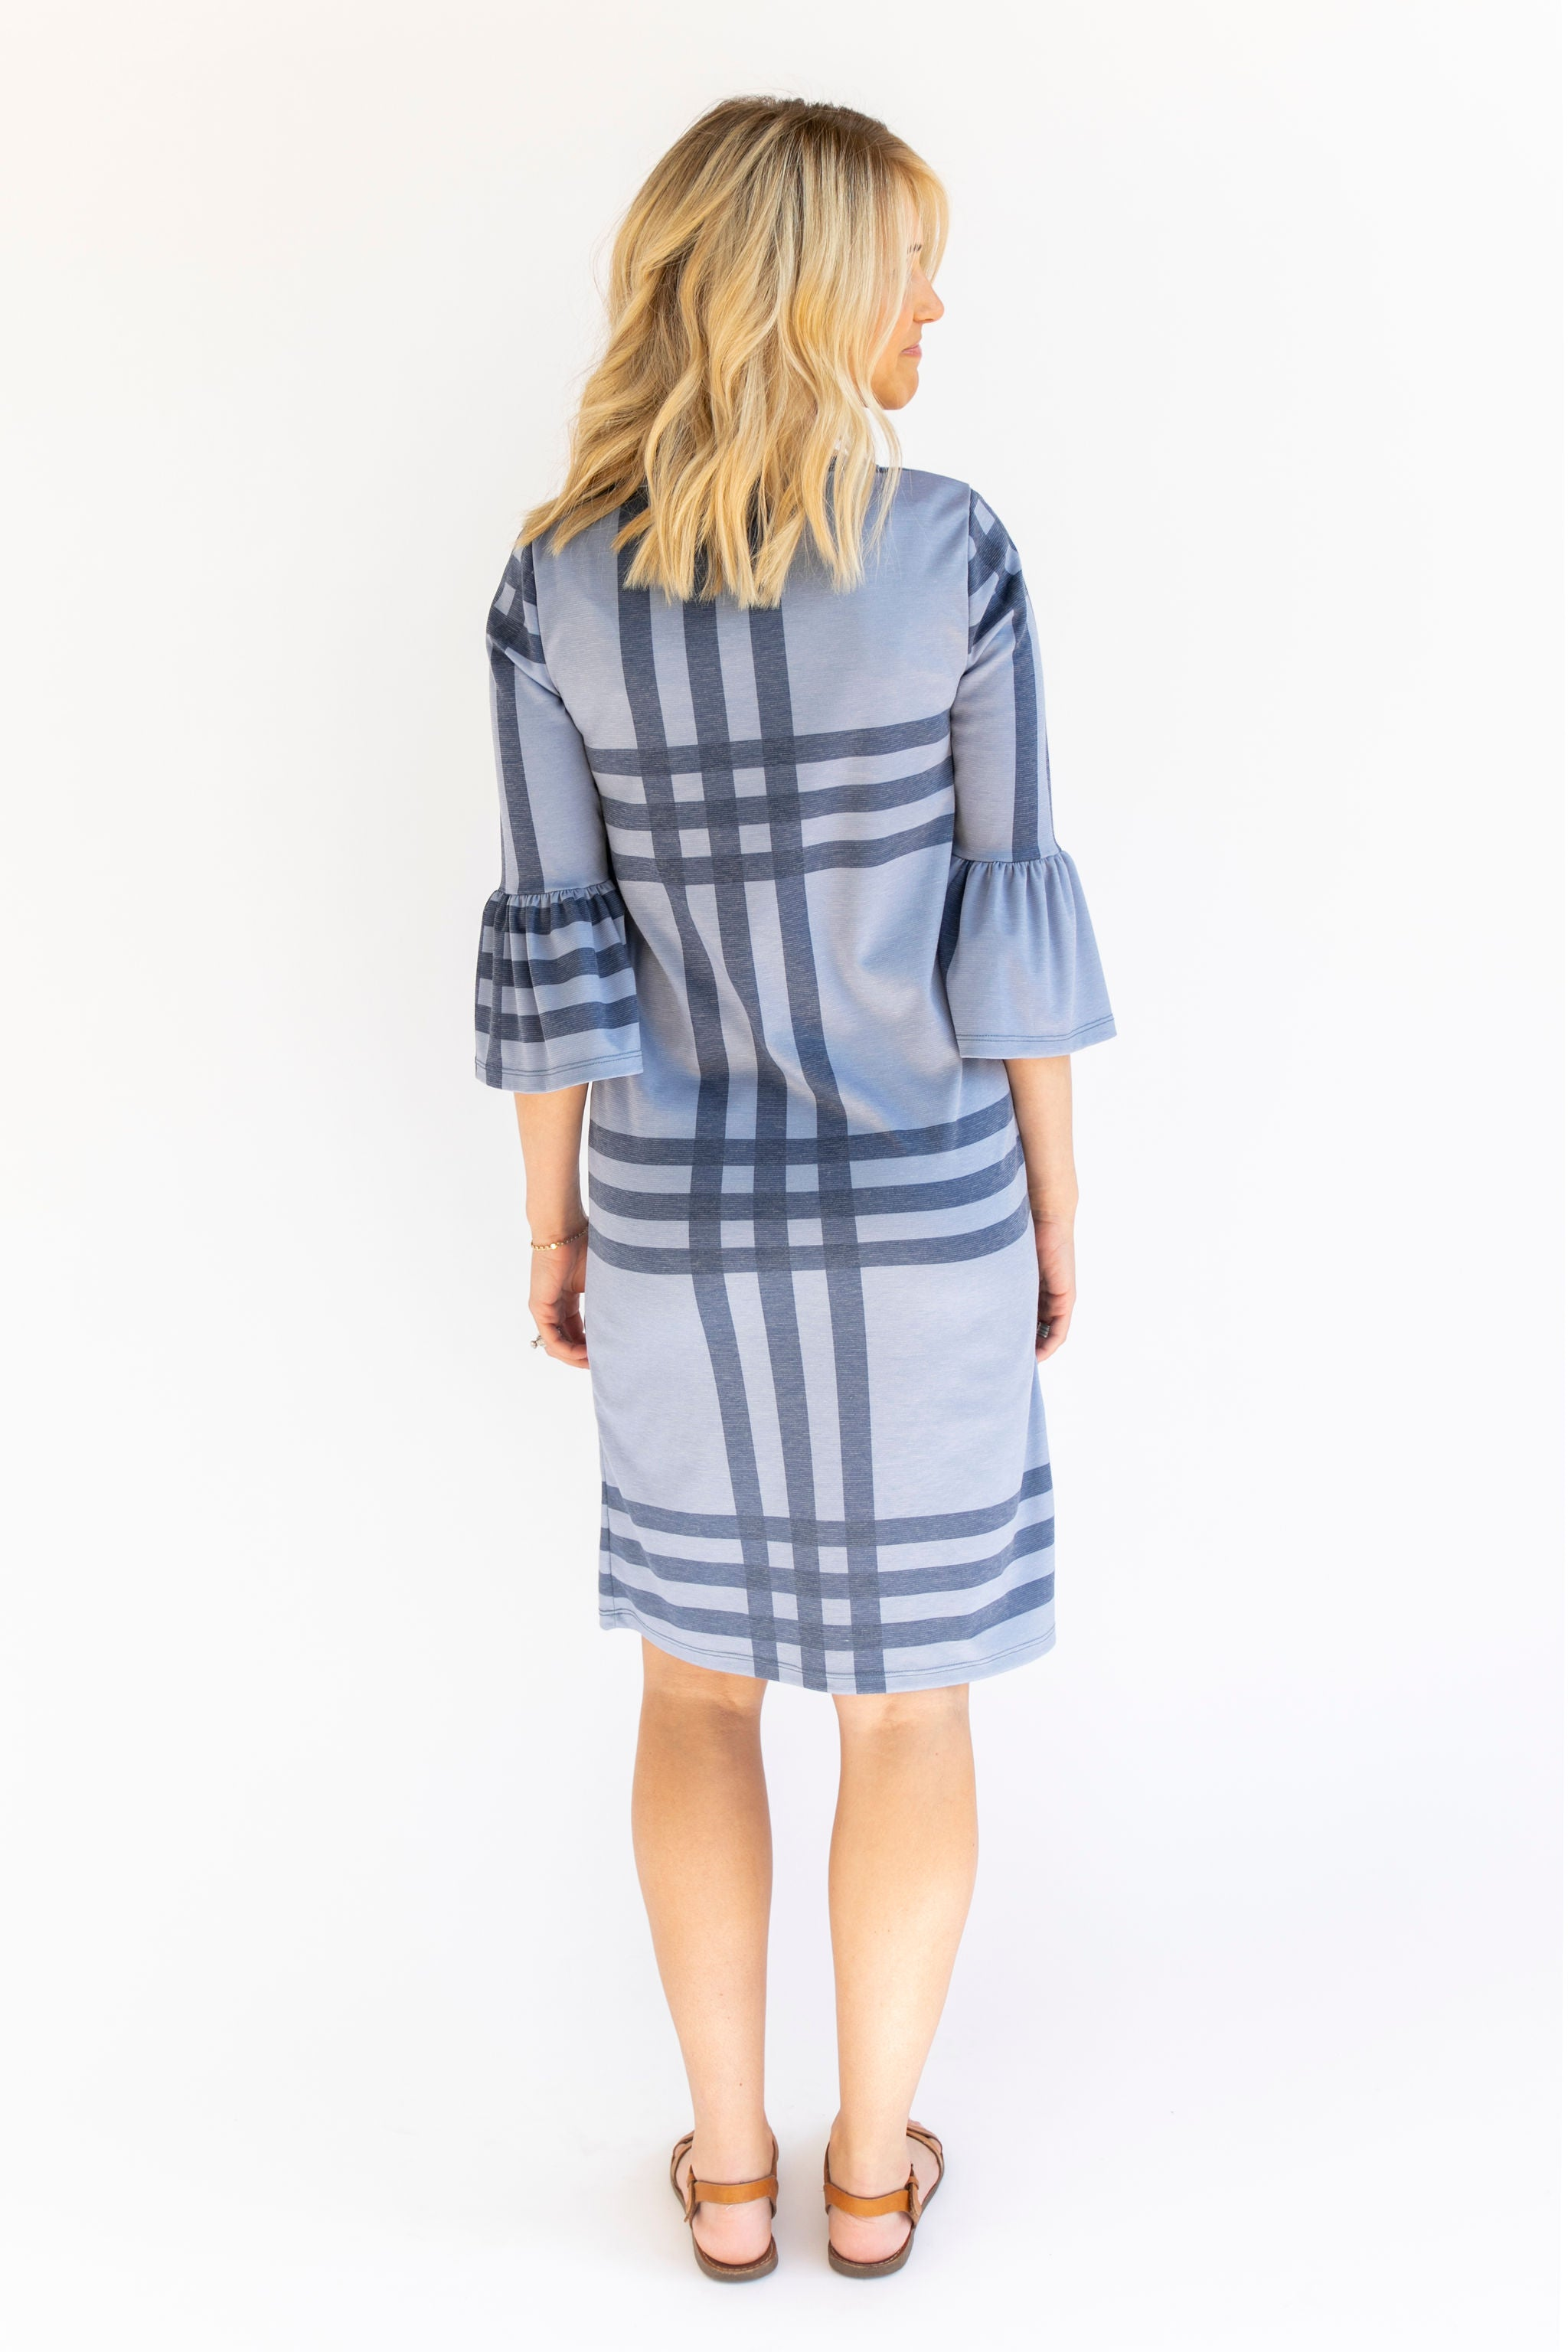 CW Windowpane - Bell Sleeve Nursing Dress